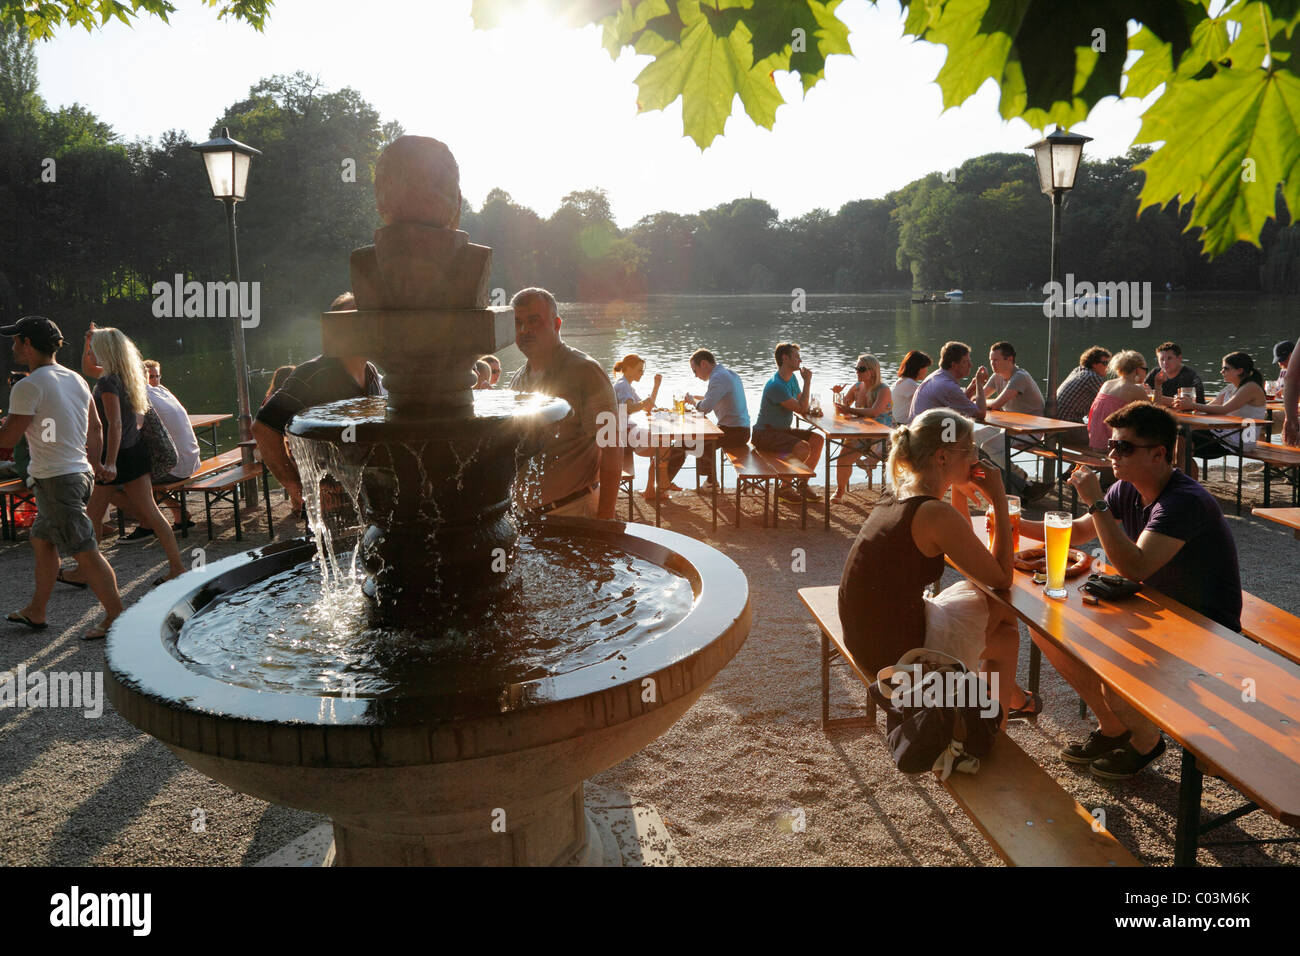 Seehaus Beer Garden Stock Photos & Seehaus Beer Garden Stock Images ...